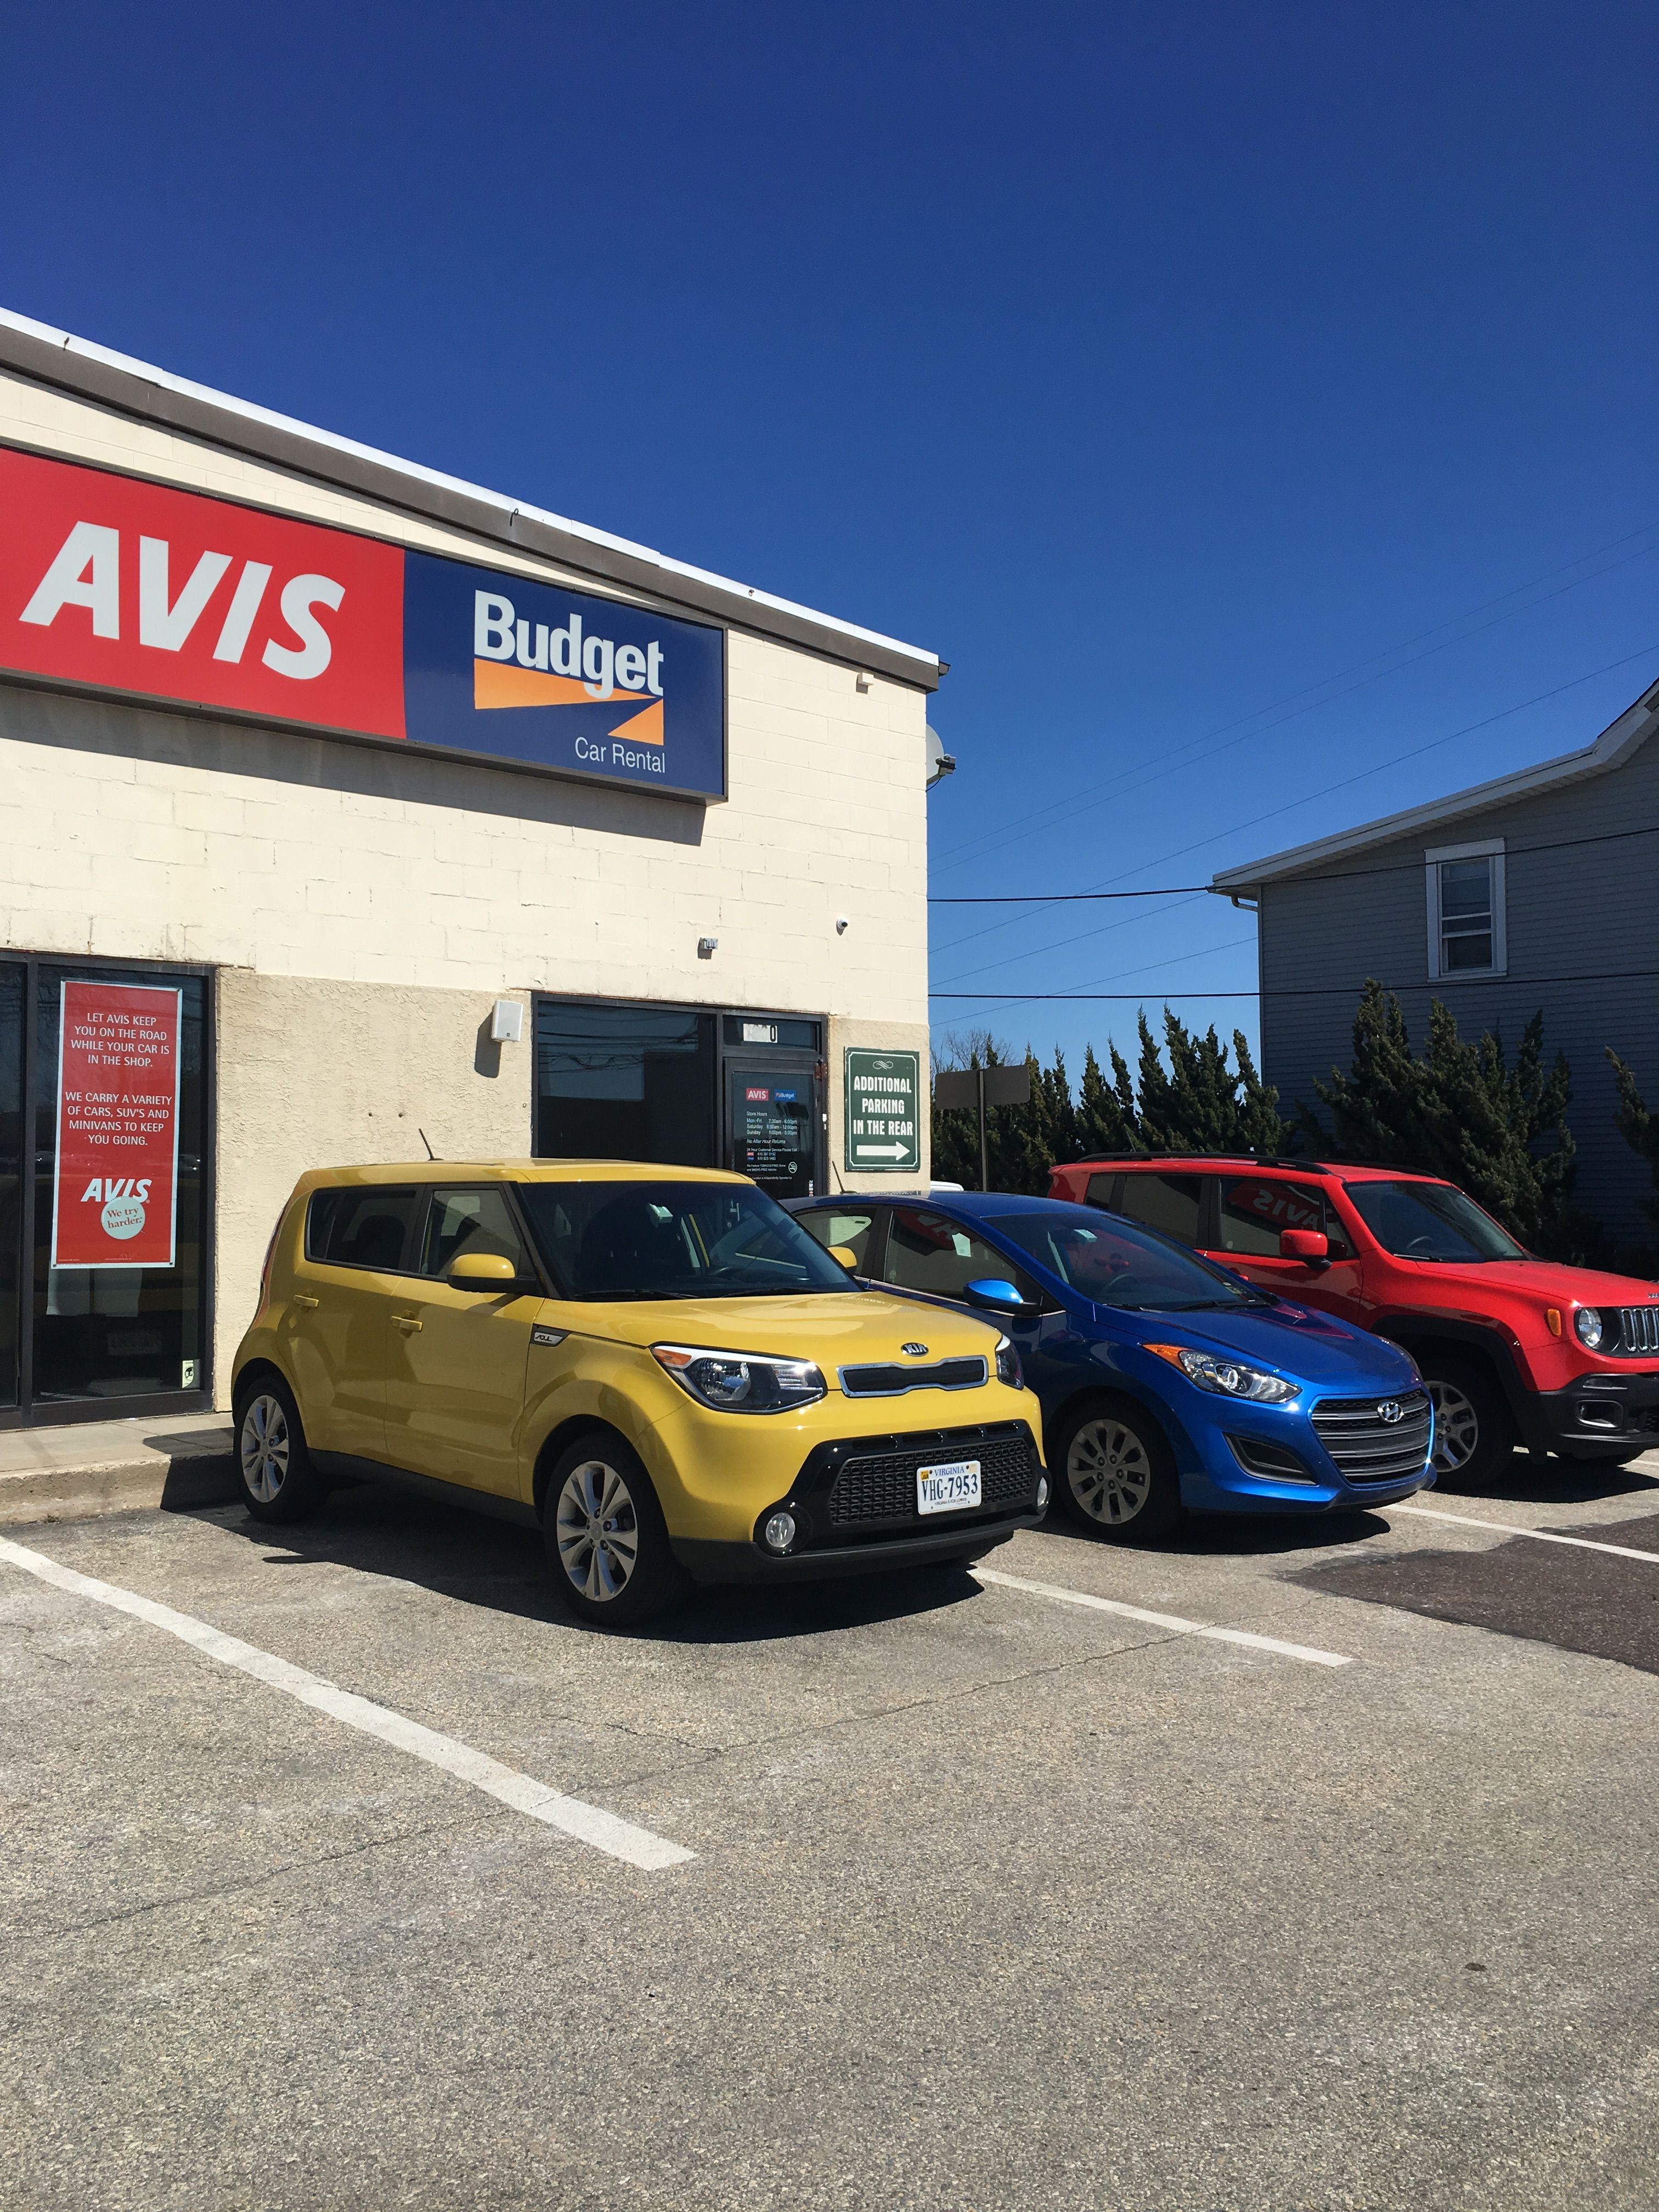 Brighten Up The Day With Avis Car Rental